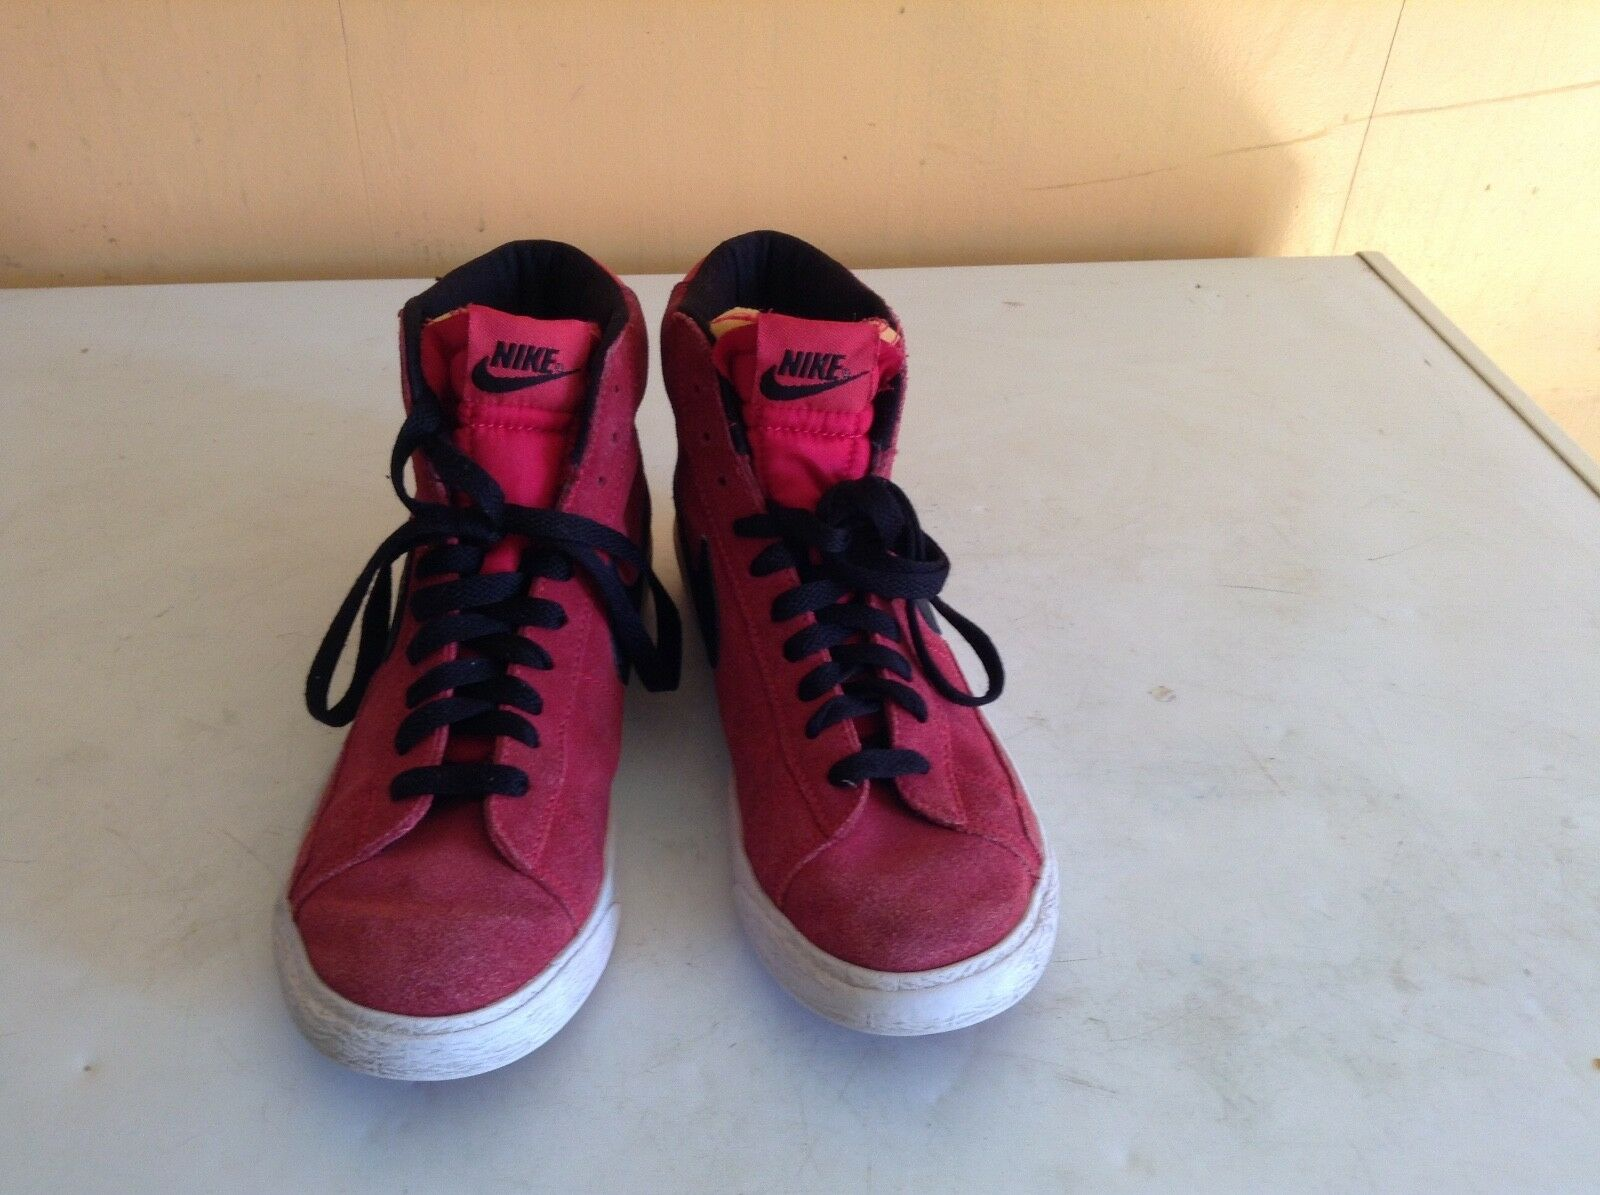 red & black nike high top blazer trainers in size 4 New shoes for men and women, limited time discount